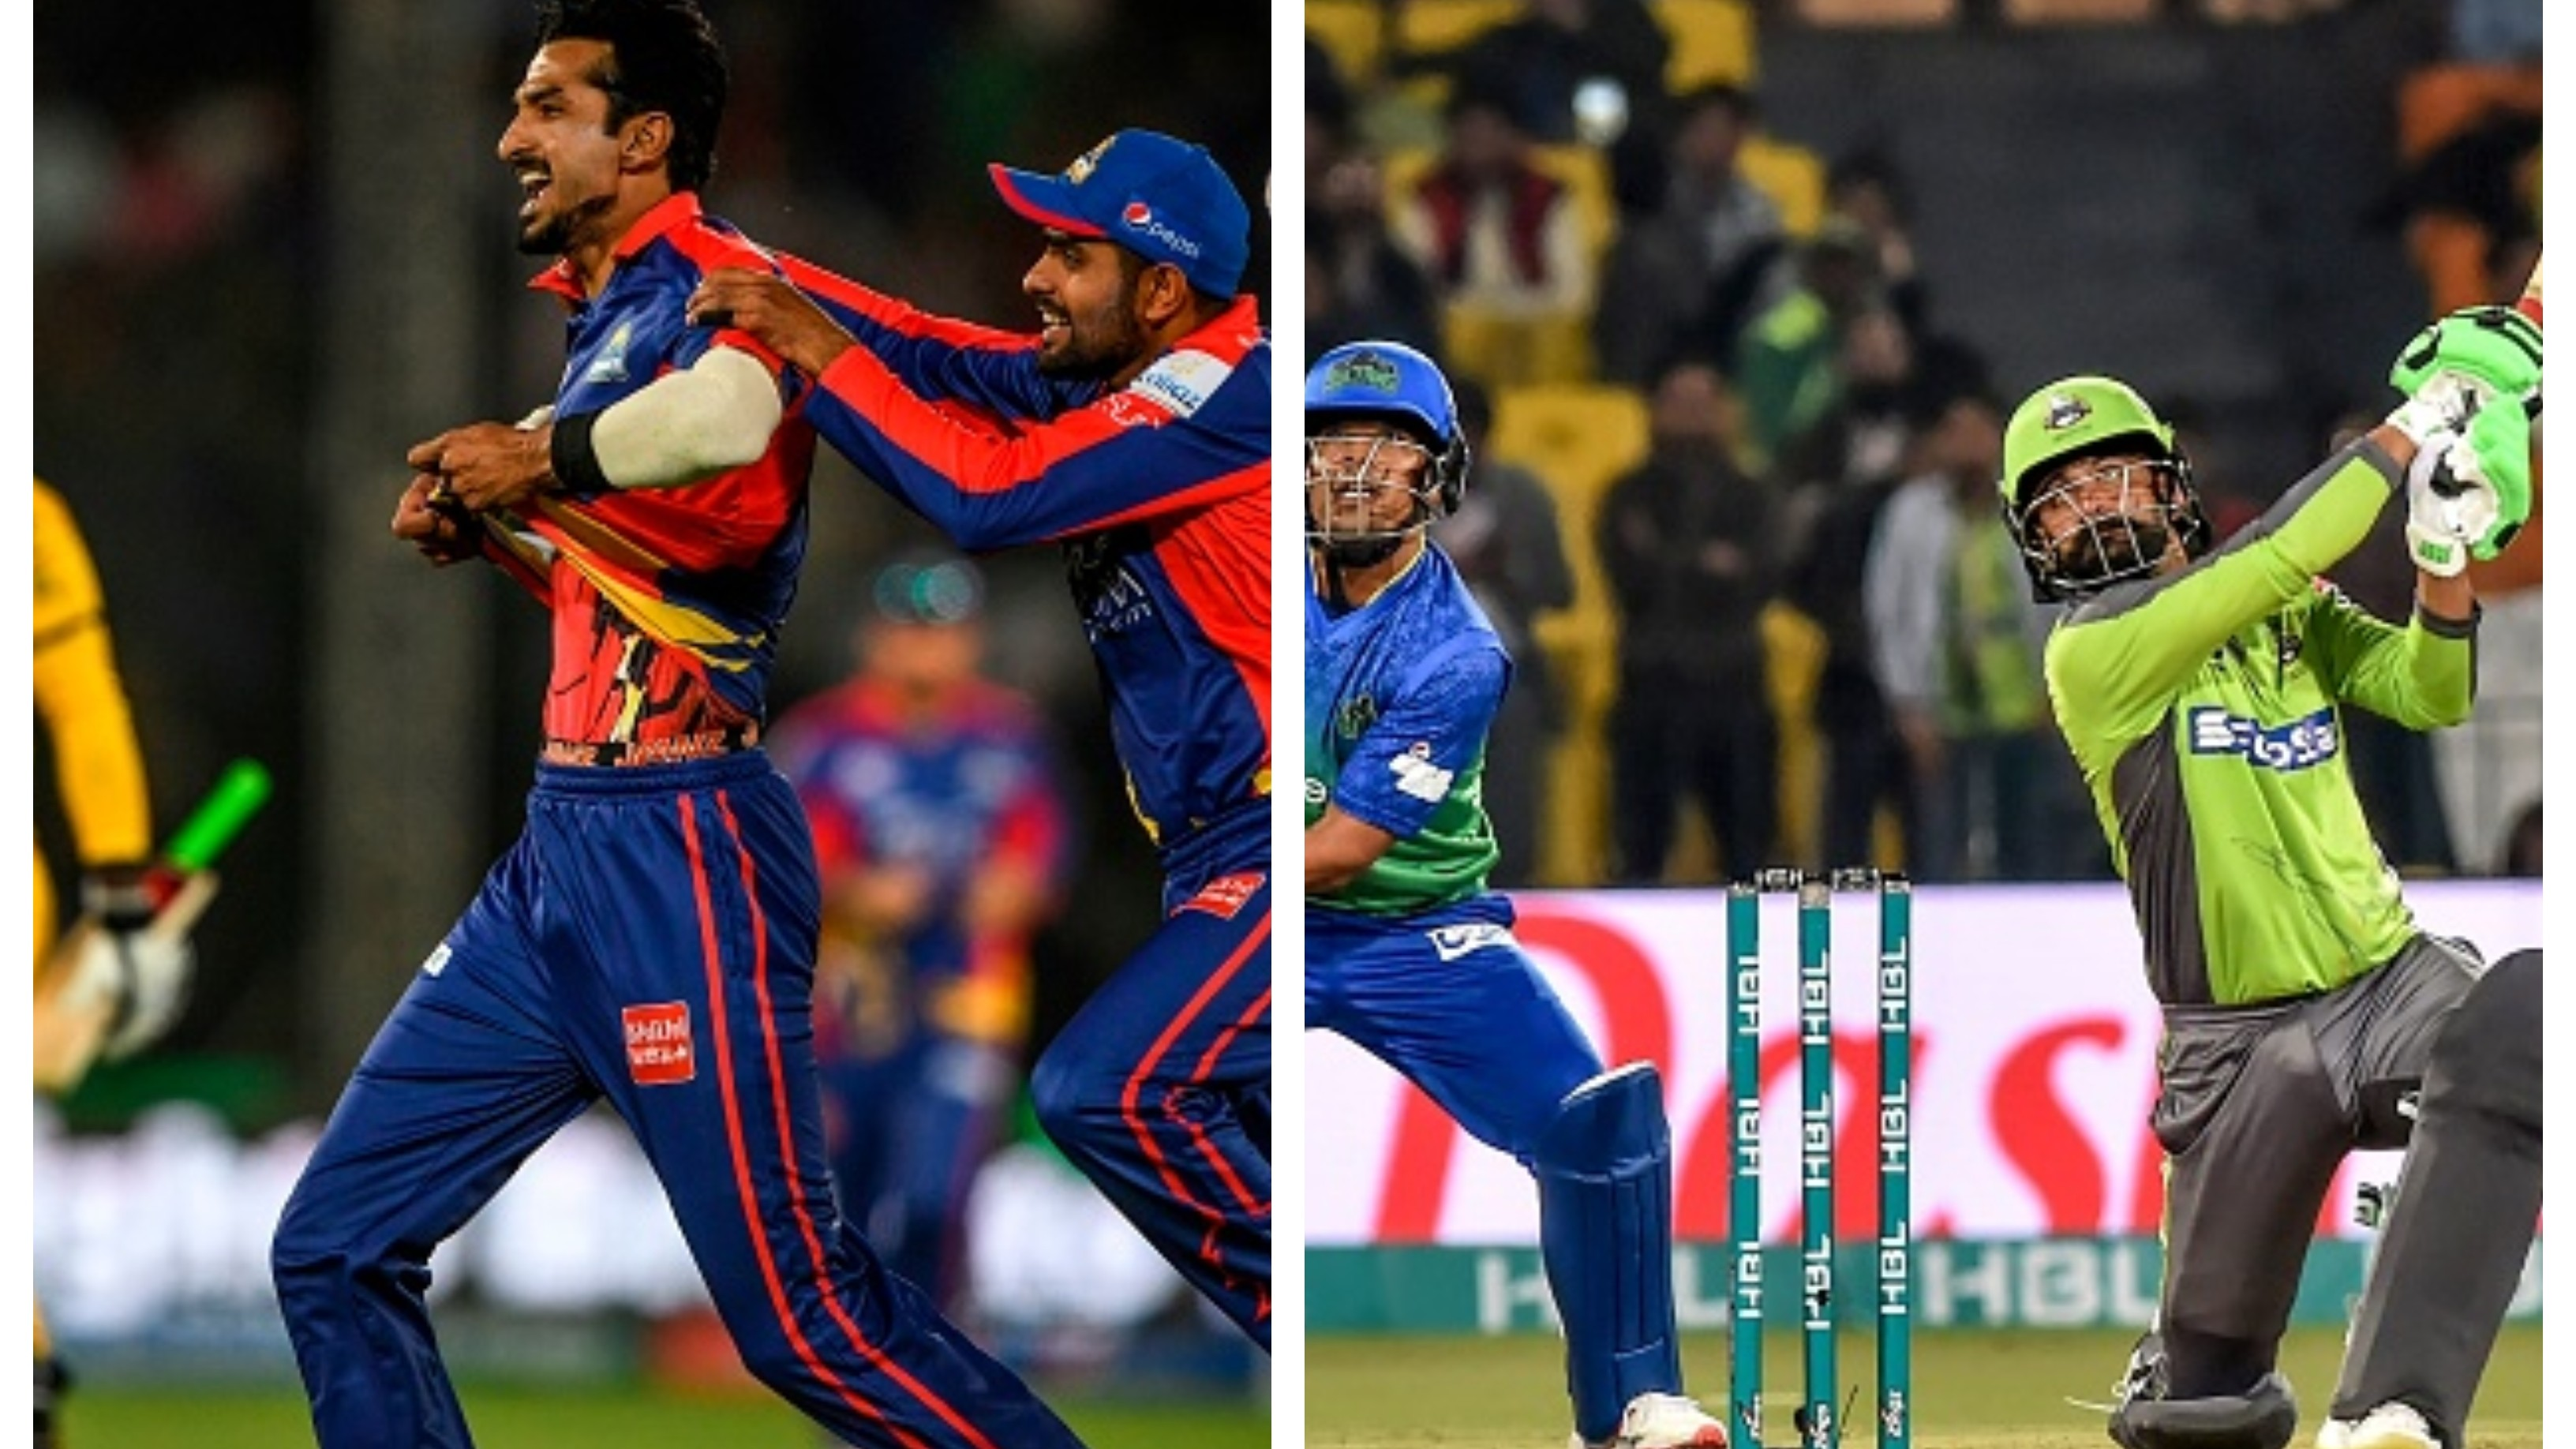 PSL 2020: Kings beat Zalmi; Sultans inch past Qalandars on double-header day